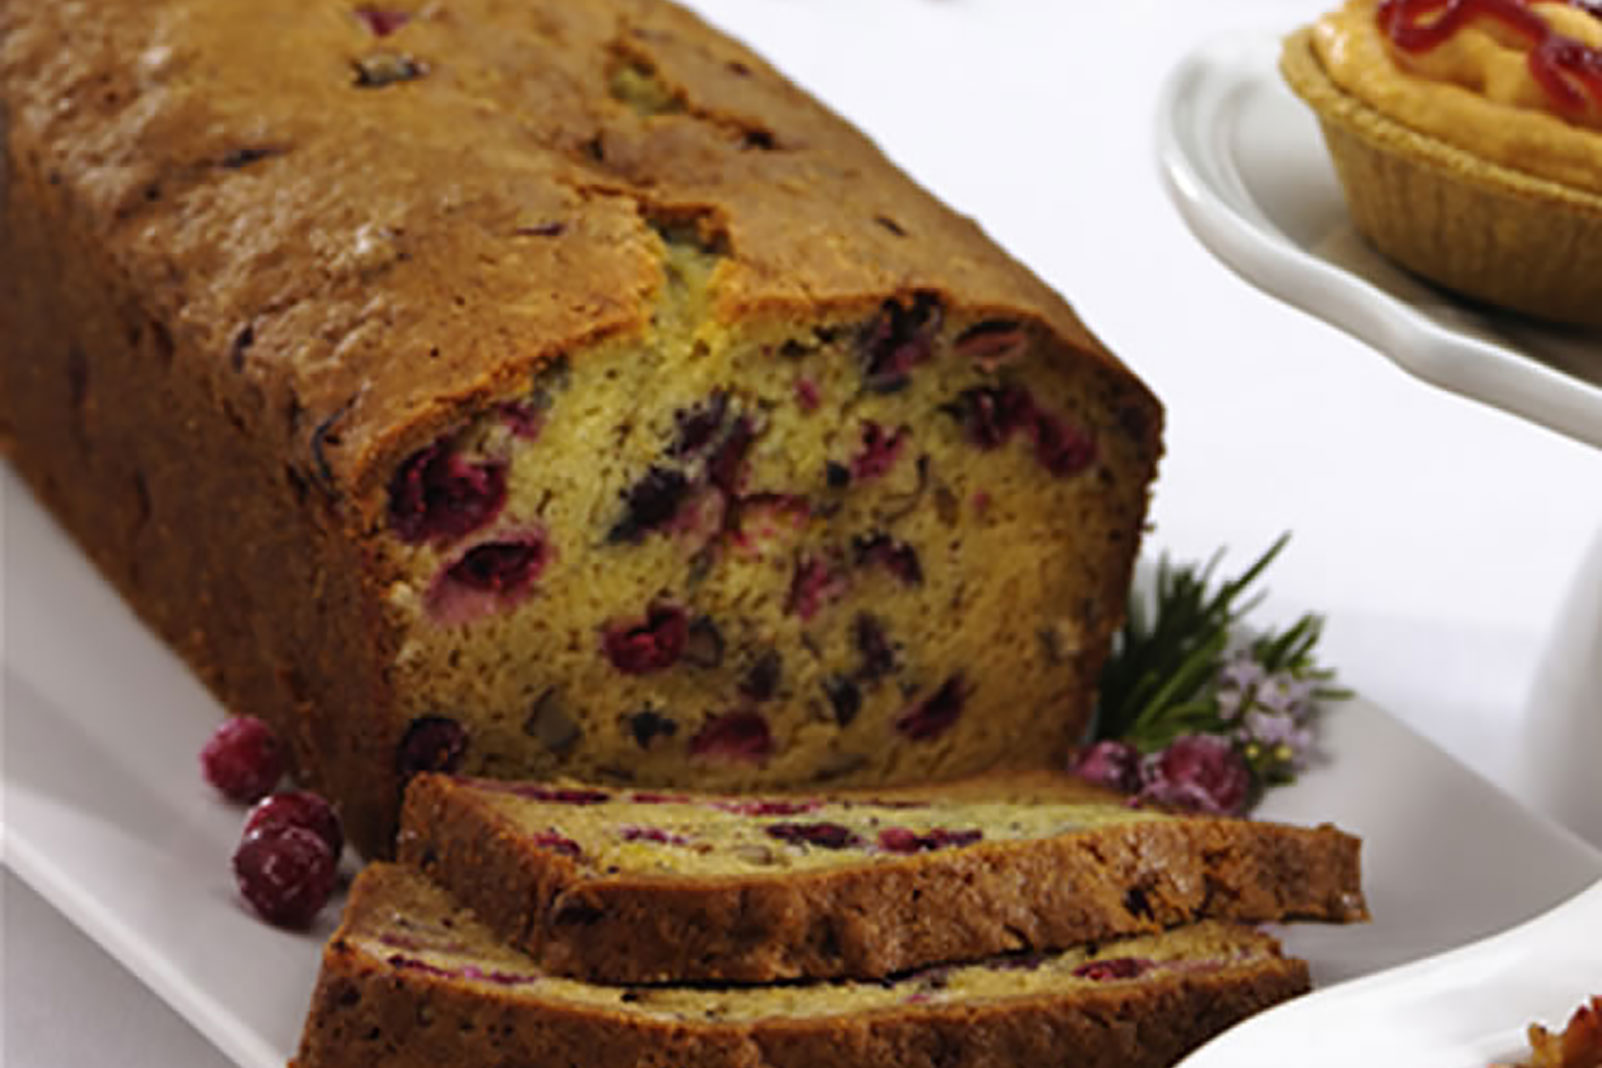 Rosemary Hazelnut Cranberry Bread